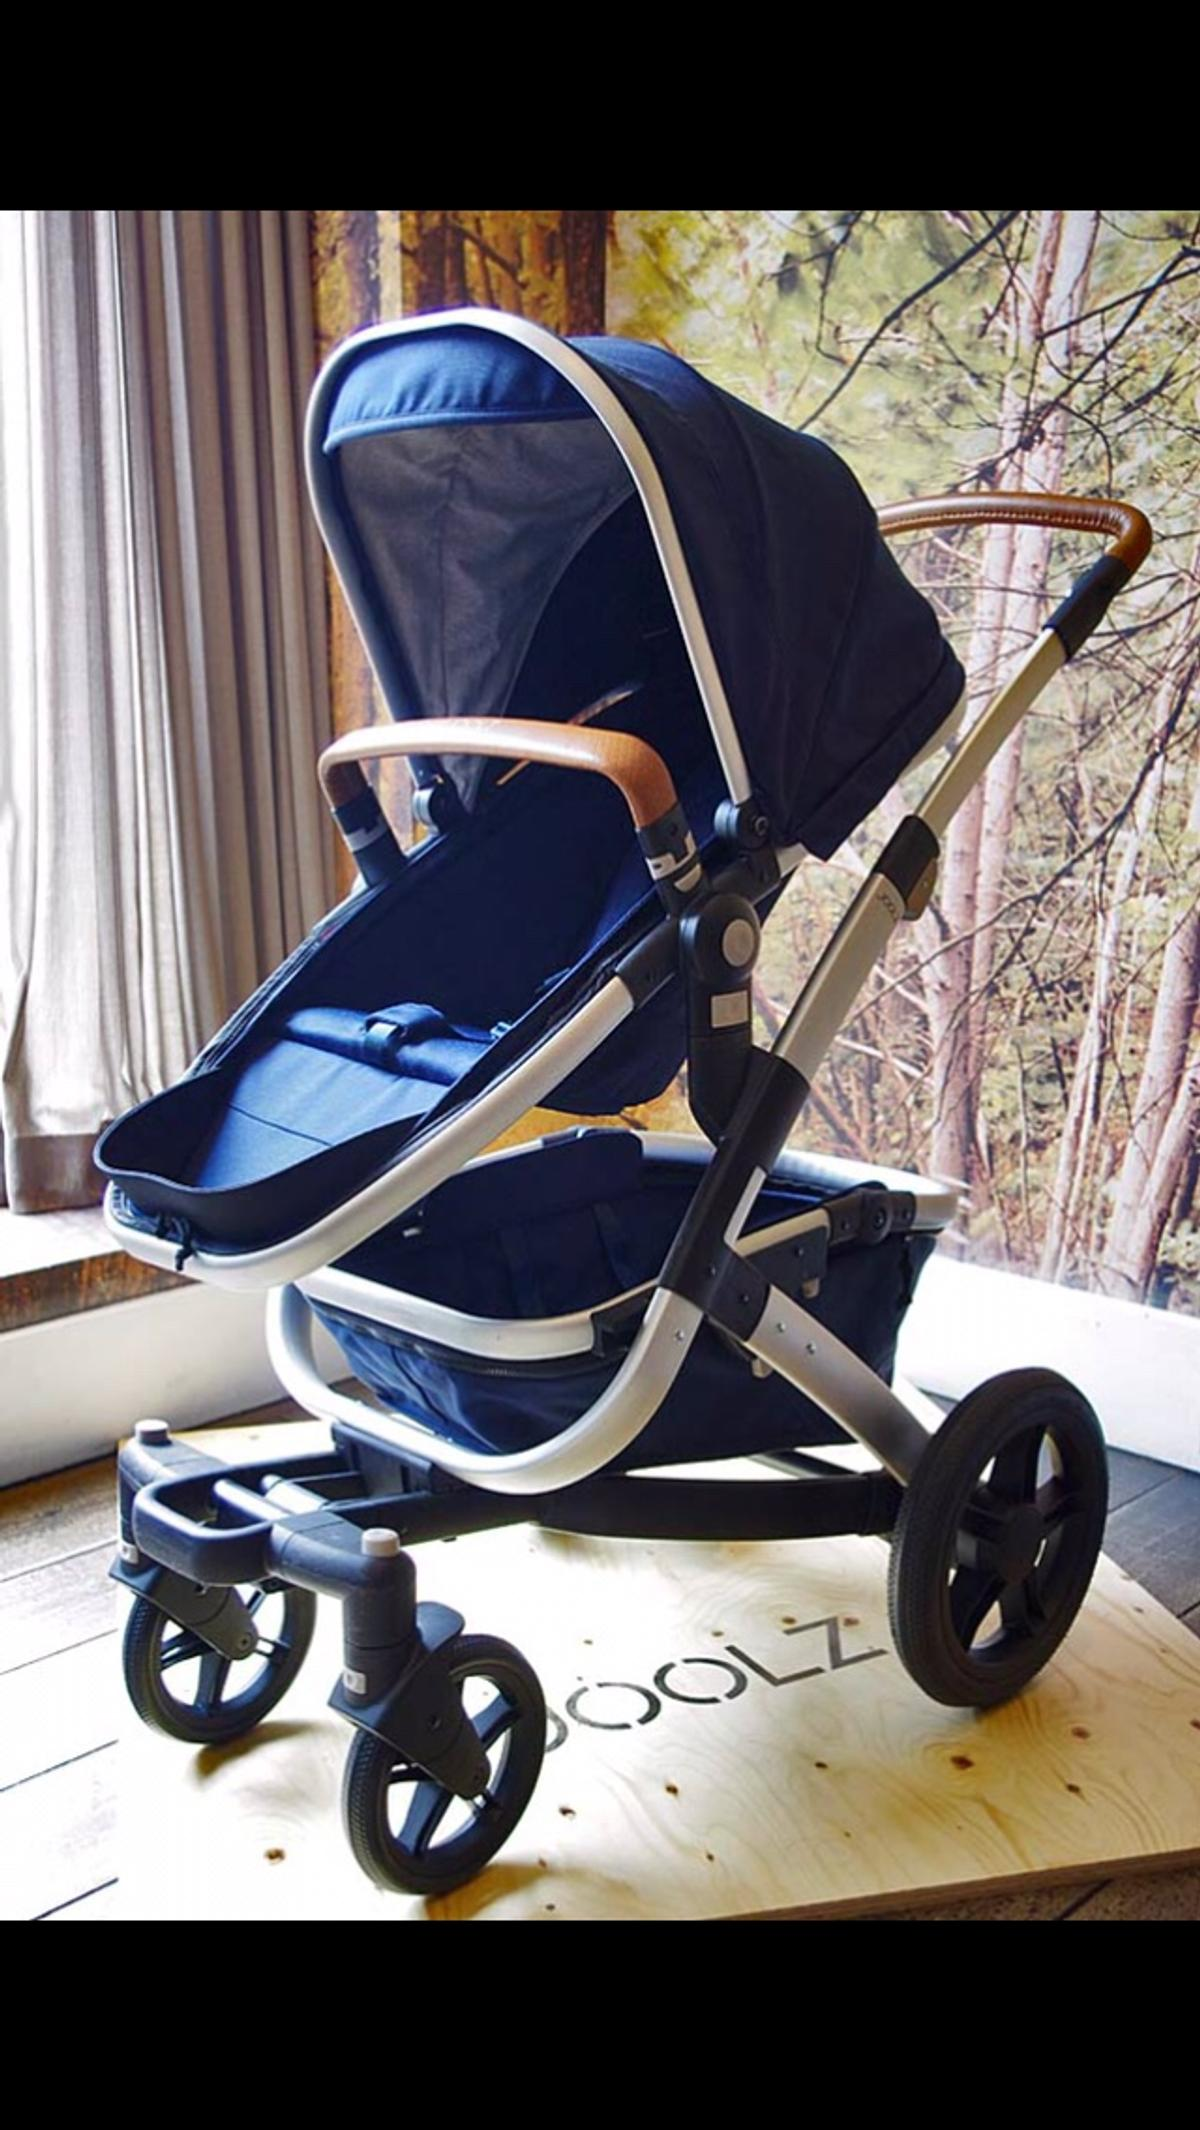 Joolz Buggy Board Uk Joolz Geo Parrot Blue Travel System In Se25 London For